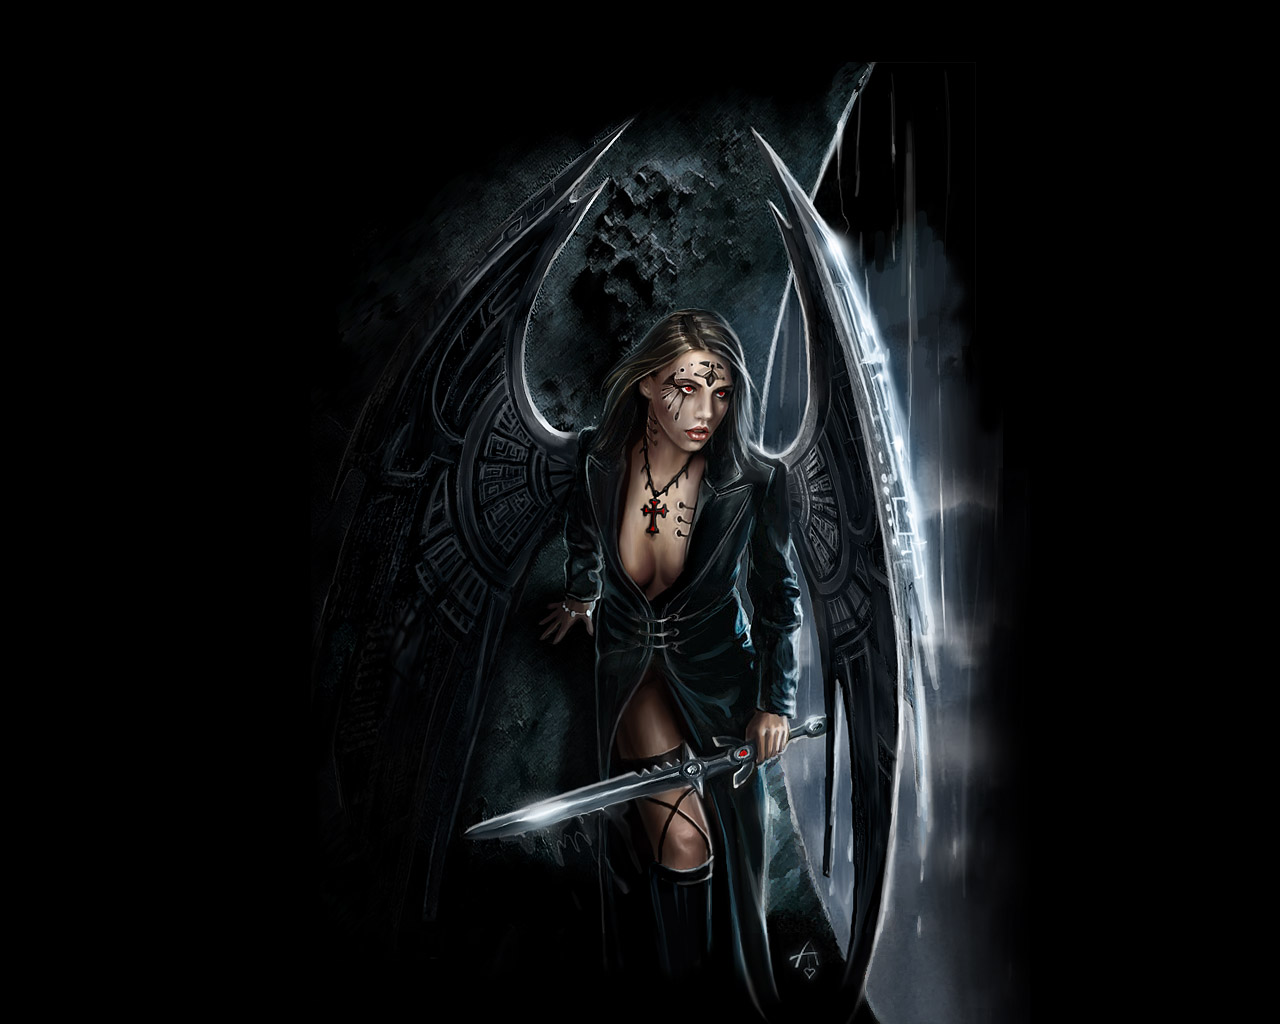 the angel of war with steel wings angels and demons wallpaper 1280x1024